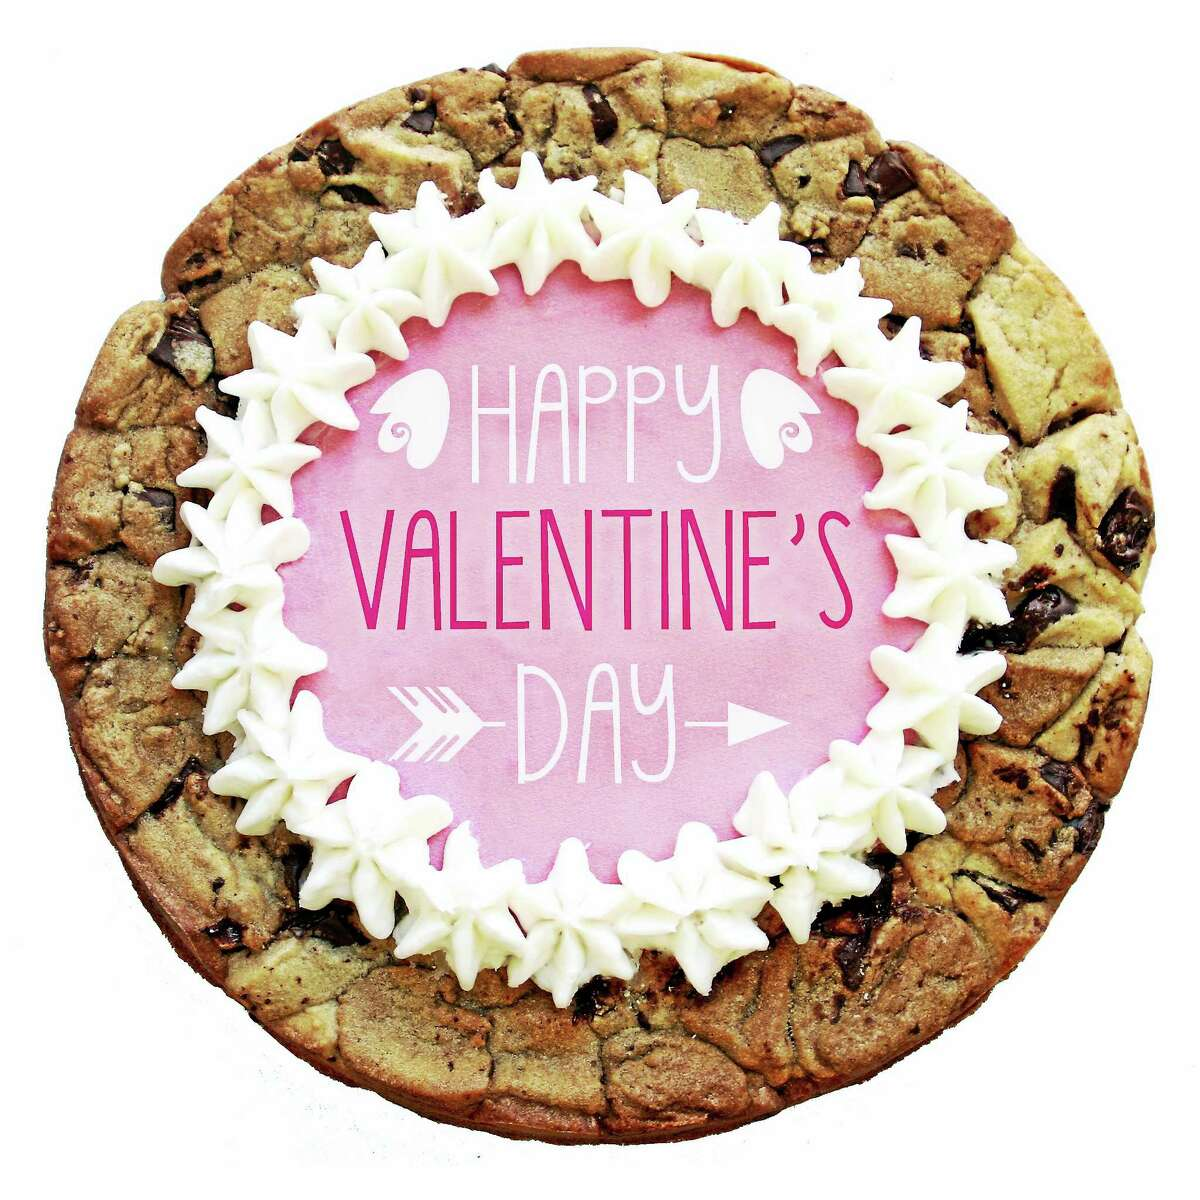 Insomnia Cookies will be offering a Valentine's Day chocolate chunk cookie cake for $18.